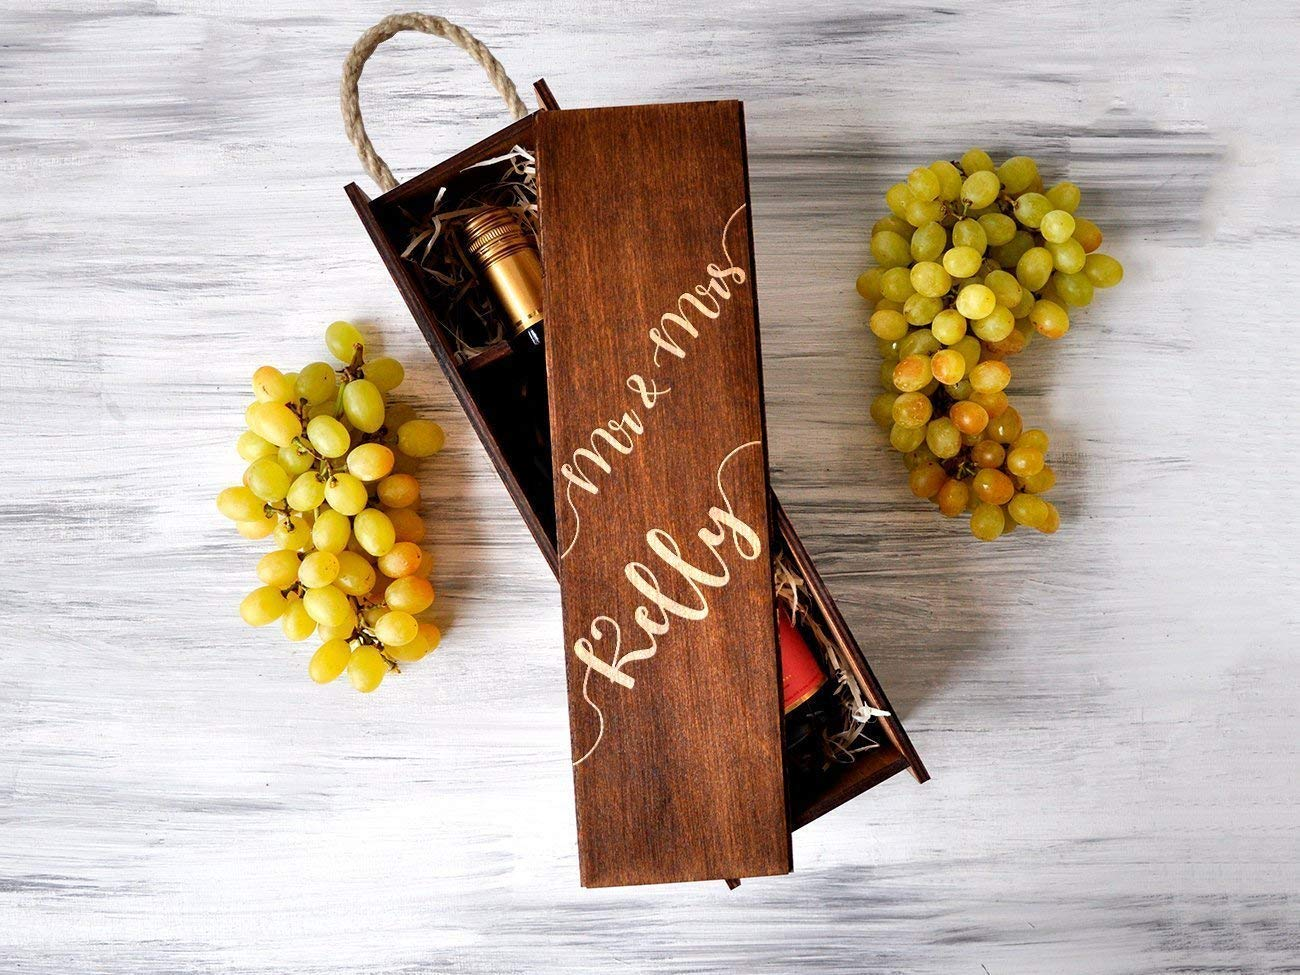 Personalized Wine Box Wedding Gift For Couple Gift for Her Wooden Wine Box Anniversary Gift Custom Engraved Wine Box Wedding Ceremony Wine Box Personalized Gift Wedding Party Gifts Mr and Mrs Gifts